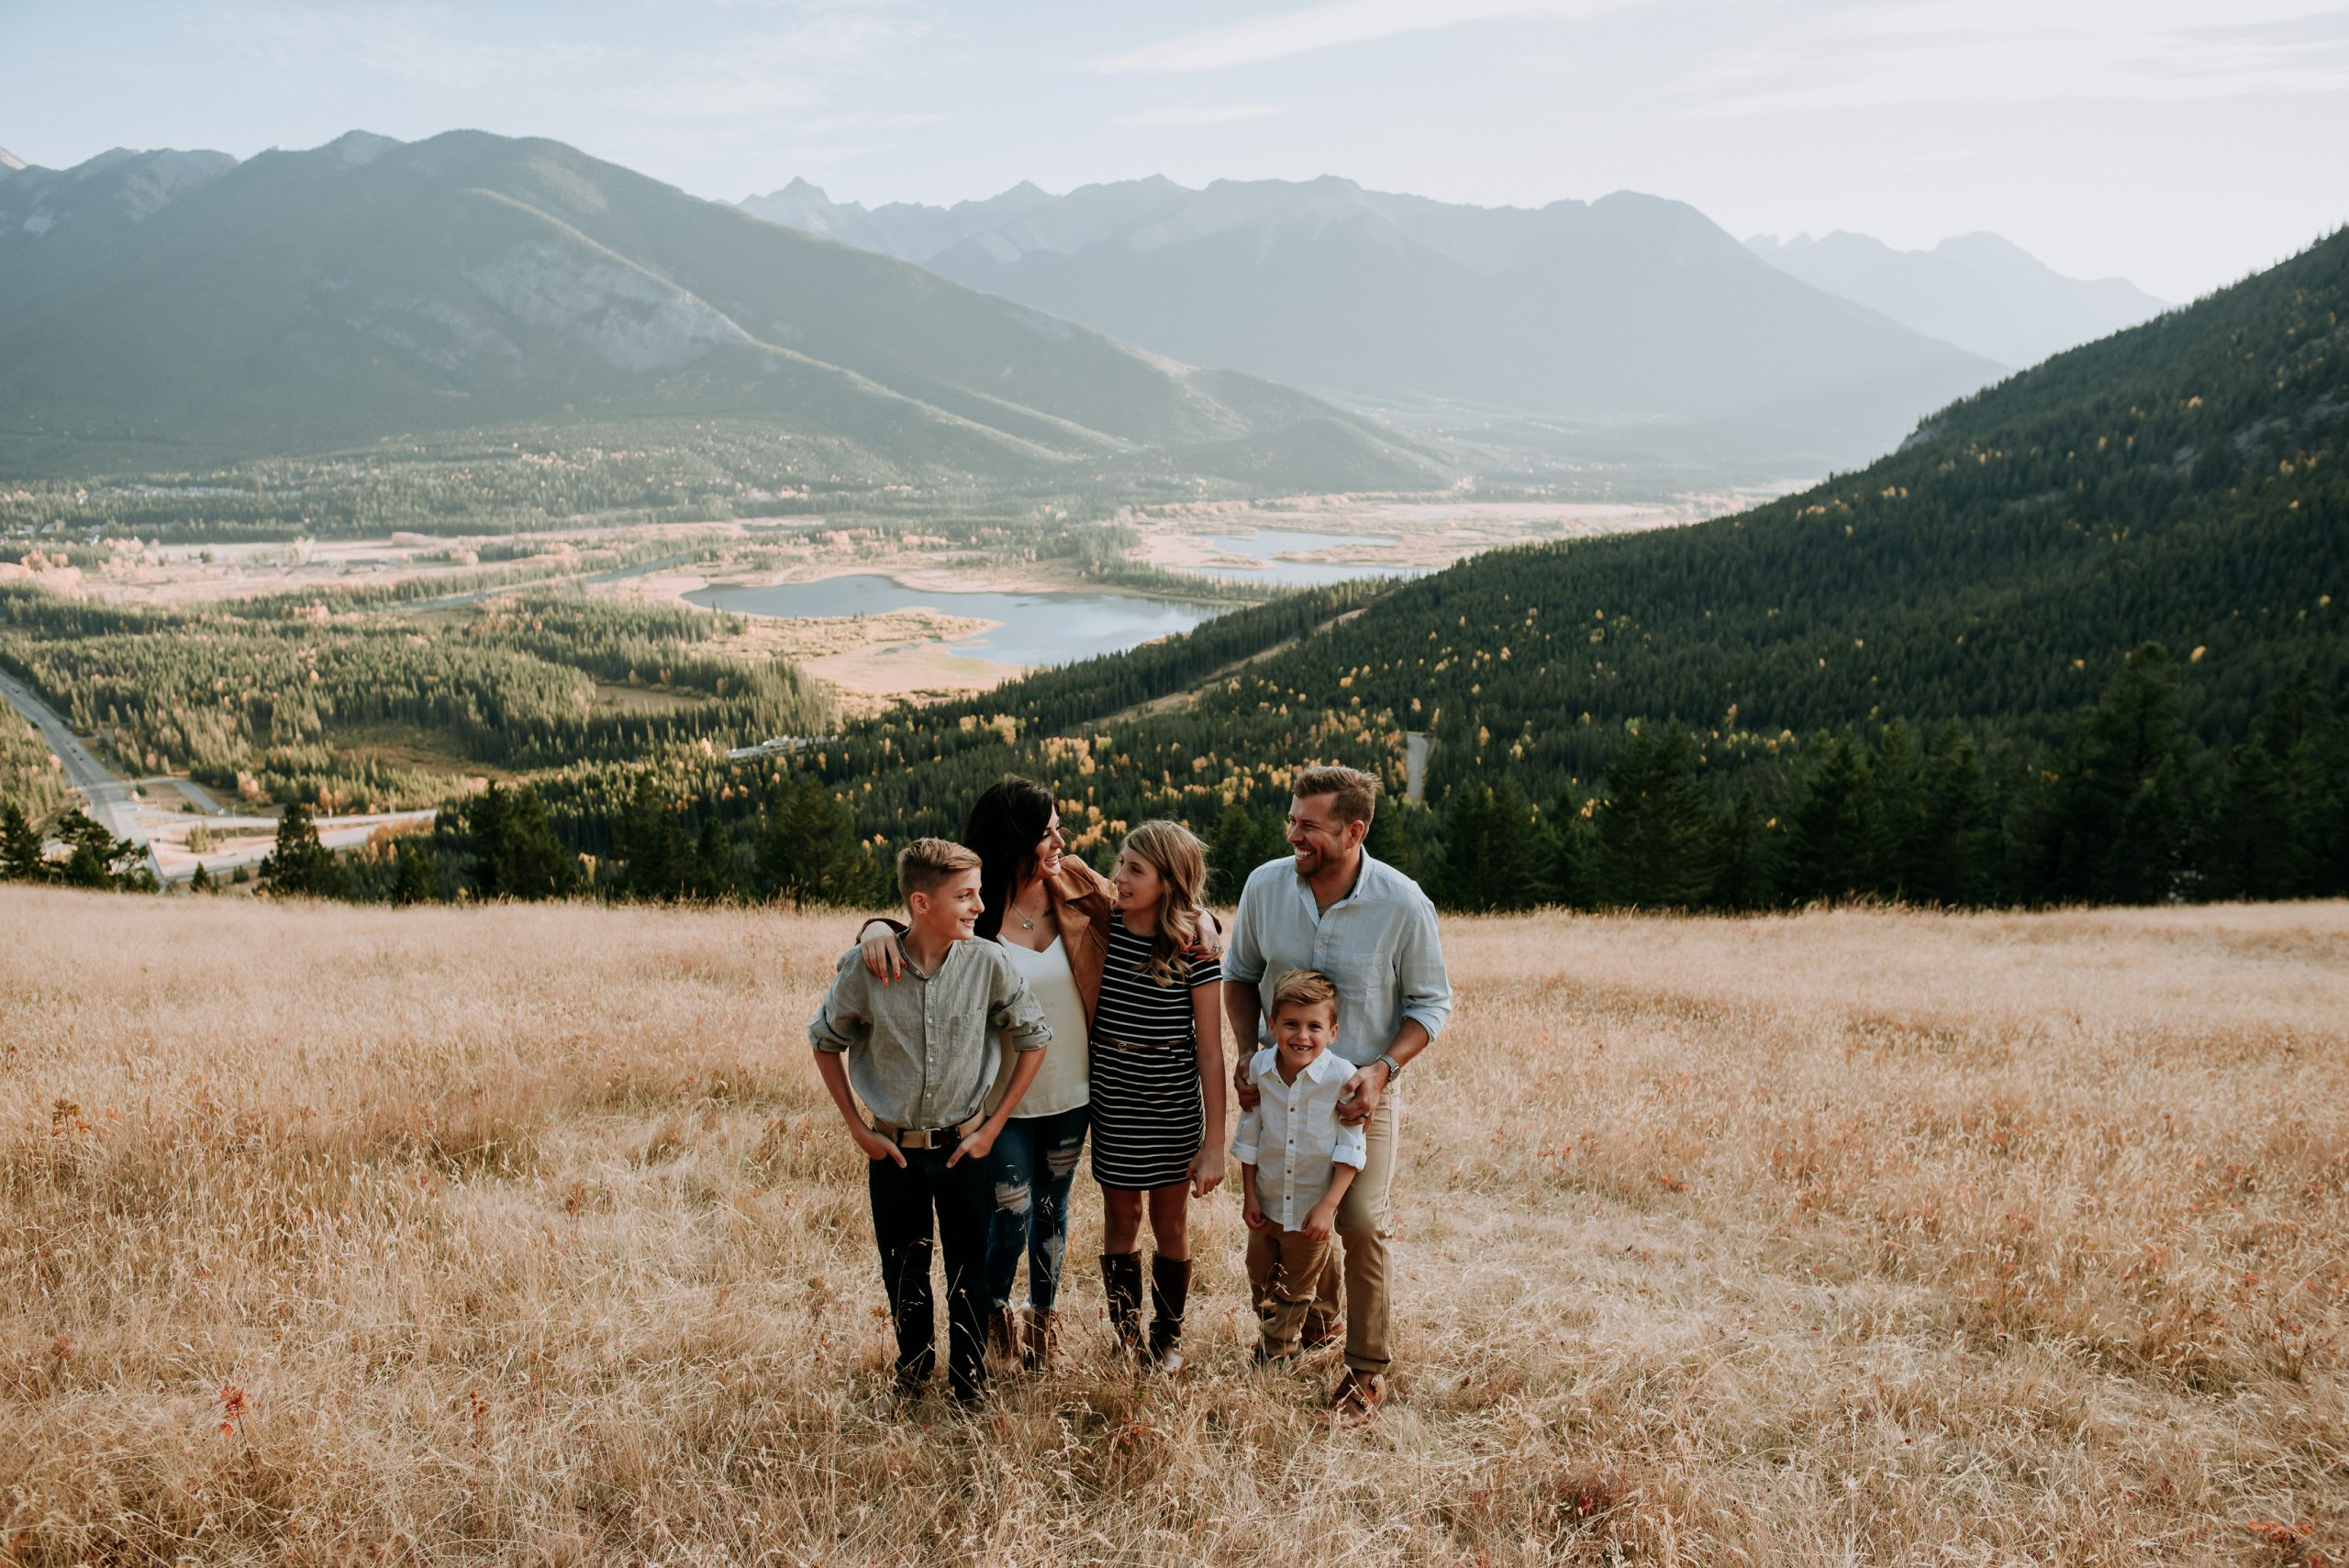 A family stands together candidly in a field with a beautiful rocky mountain background during their family photography session with photographer jena lee photographs